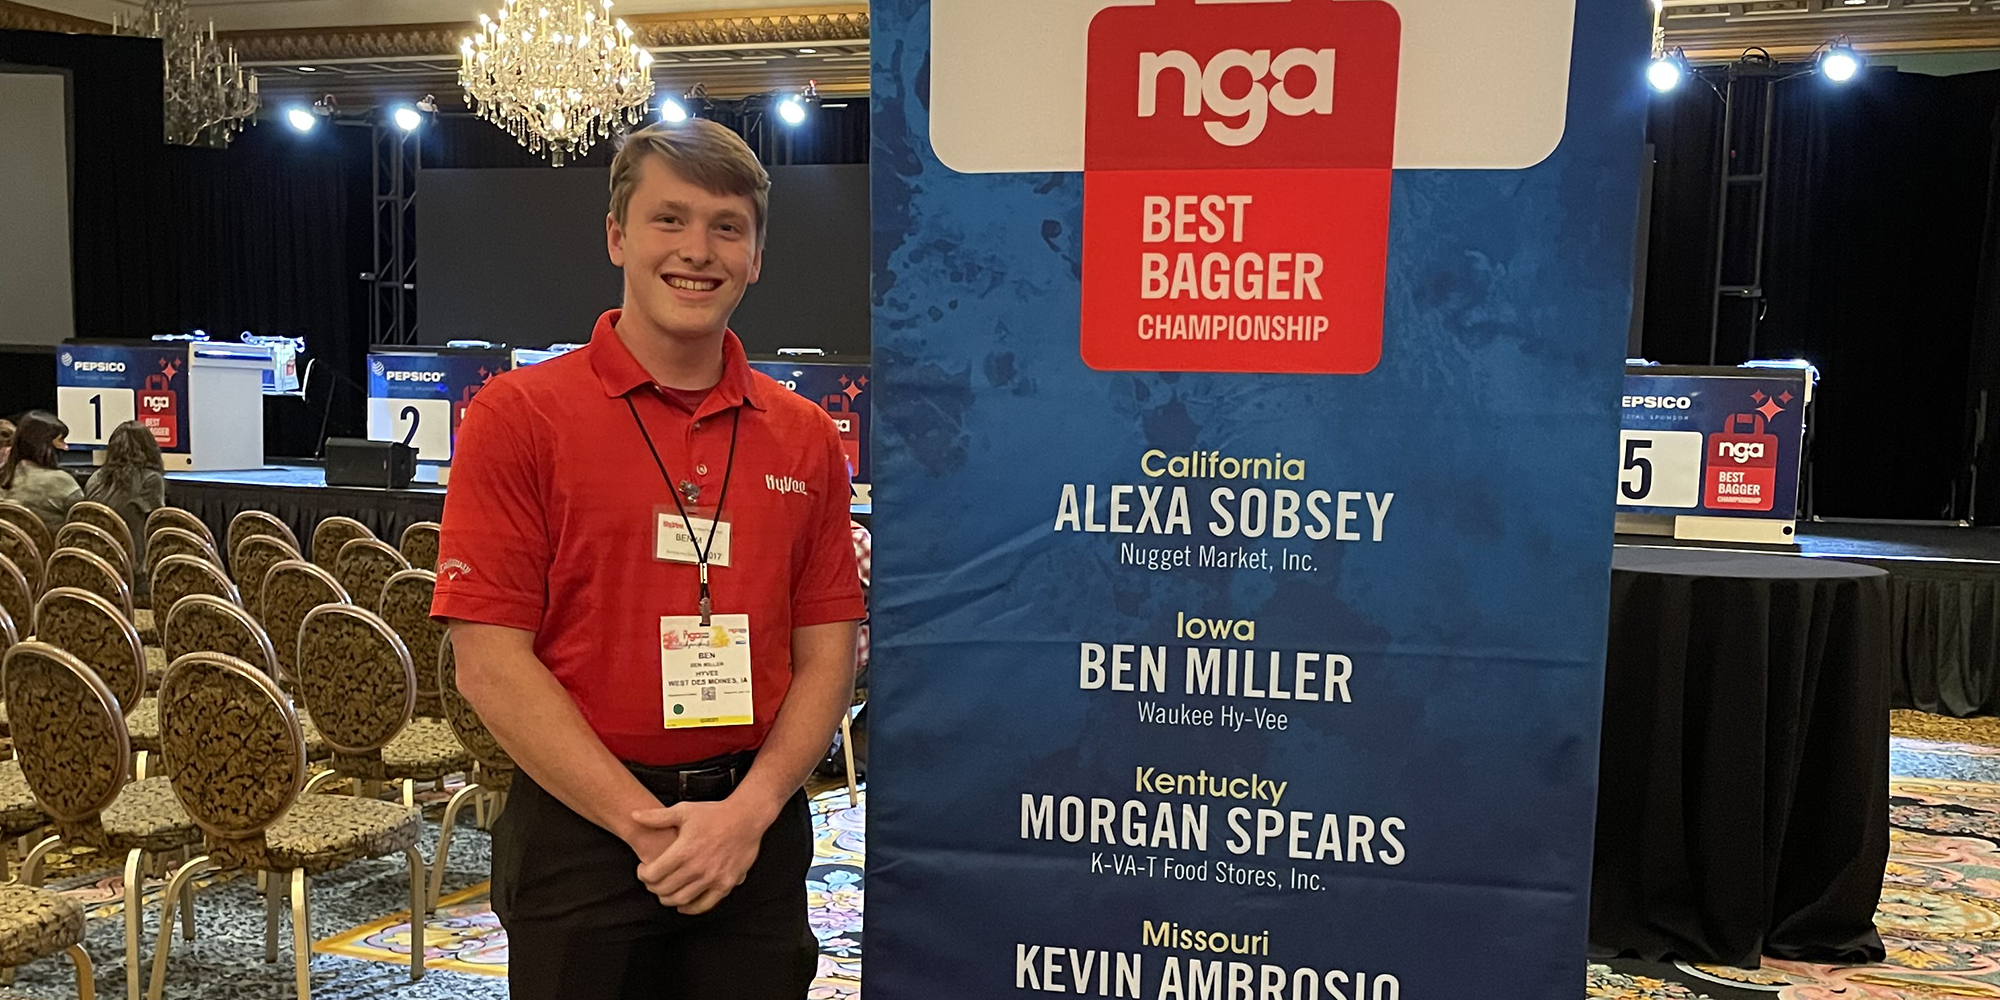 Ben Miller standing next to a banner listing the names of the National Grocers Association Best Bagger Championship